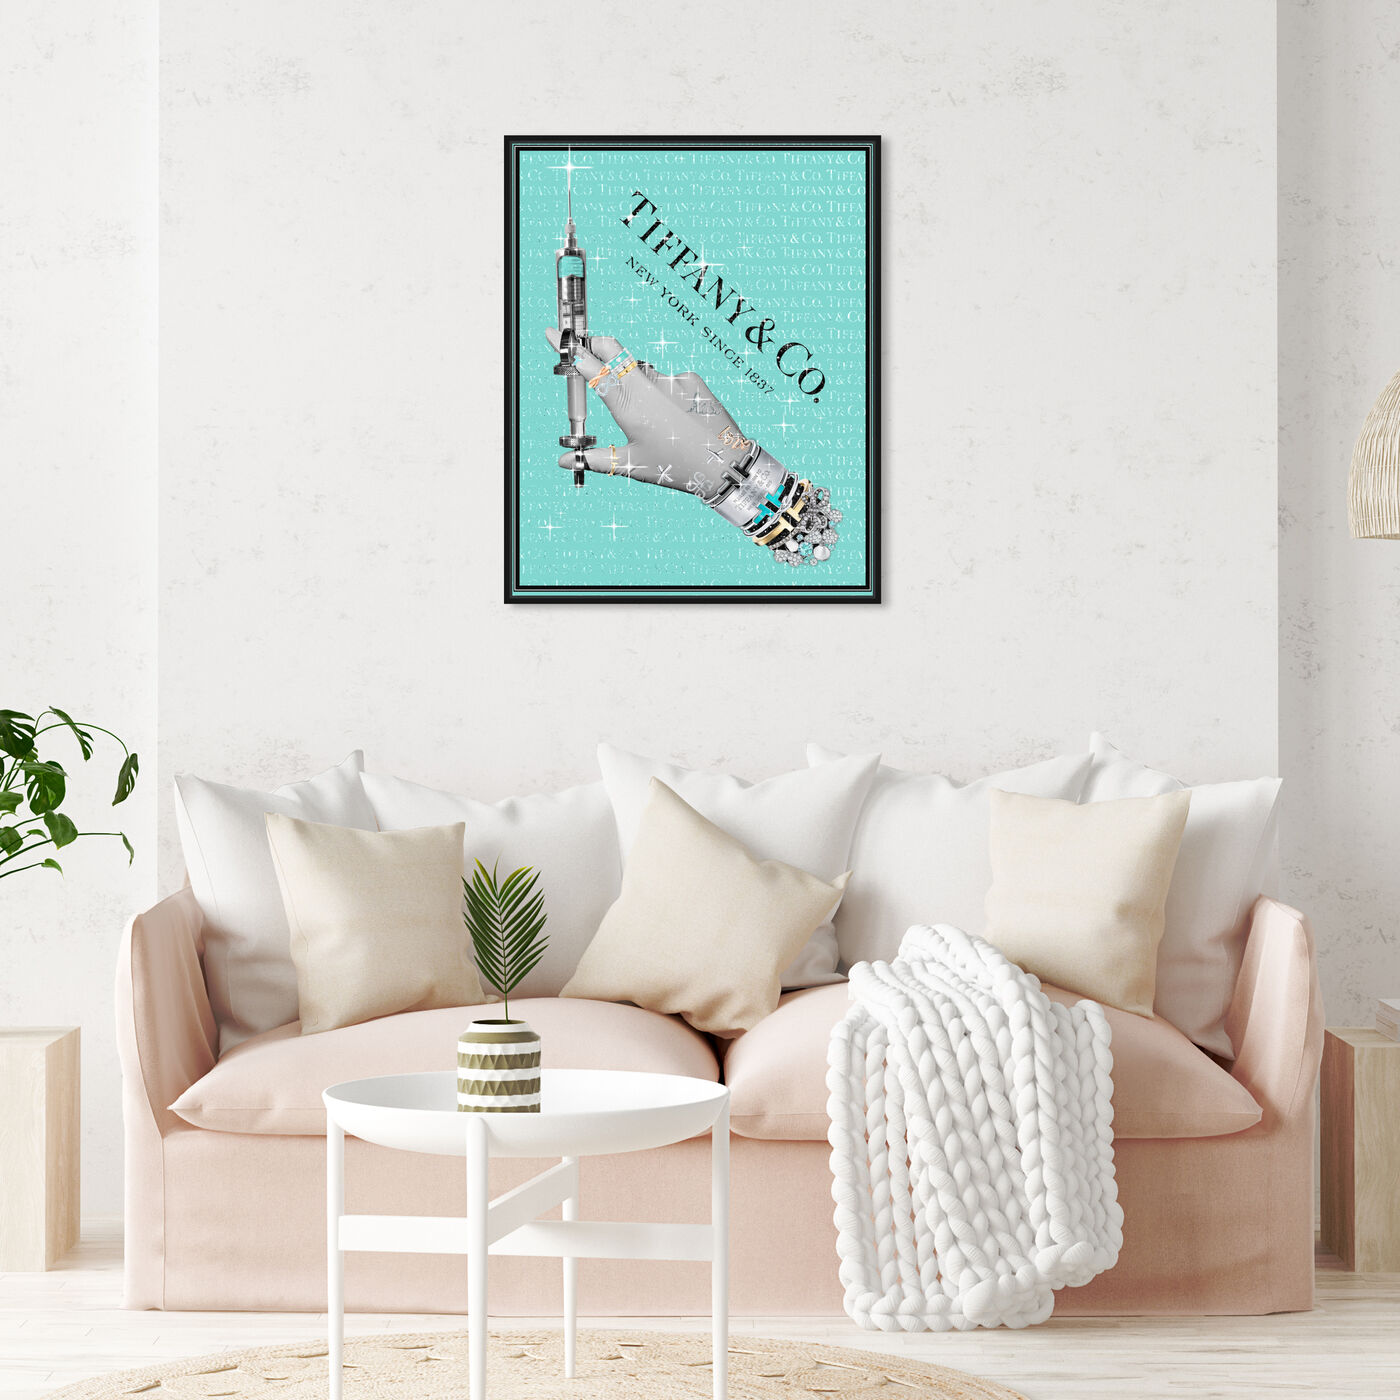 Hanging view of The Glam Nurse featuring fashion and glam and jewelry art.